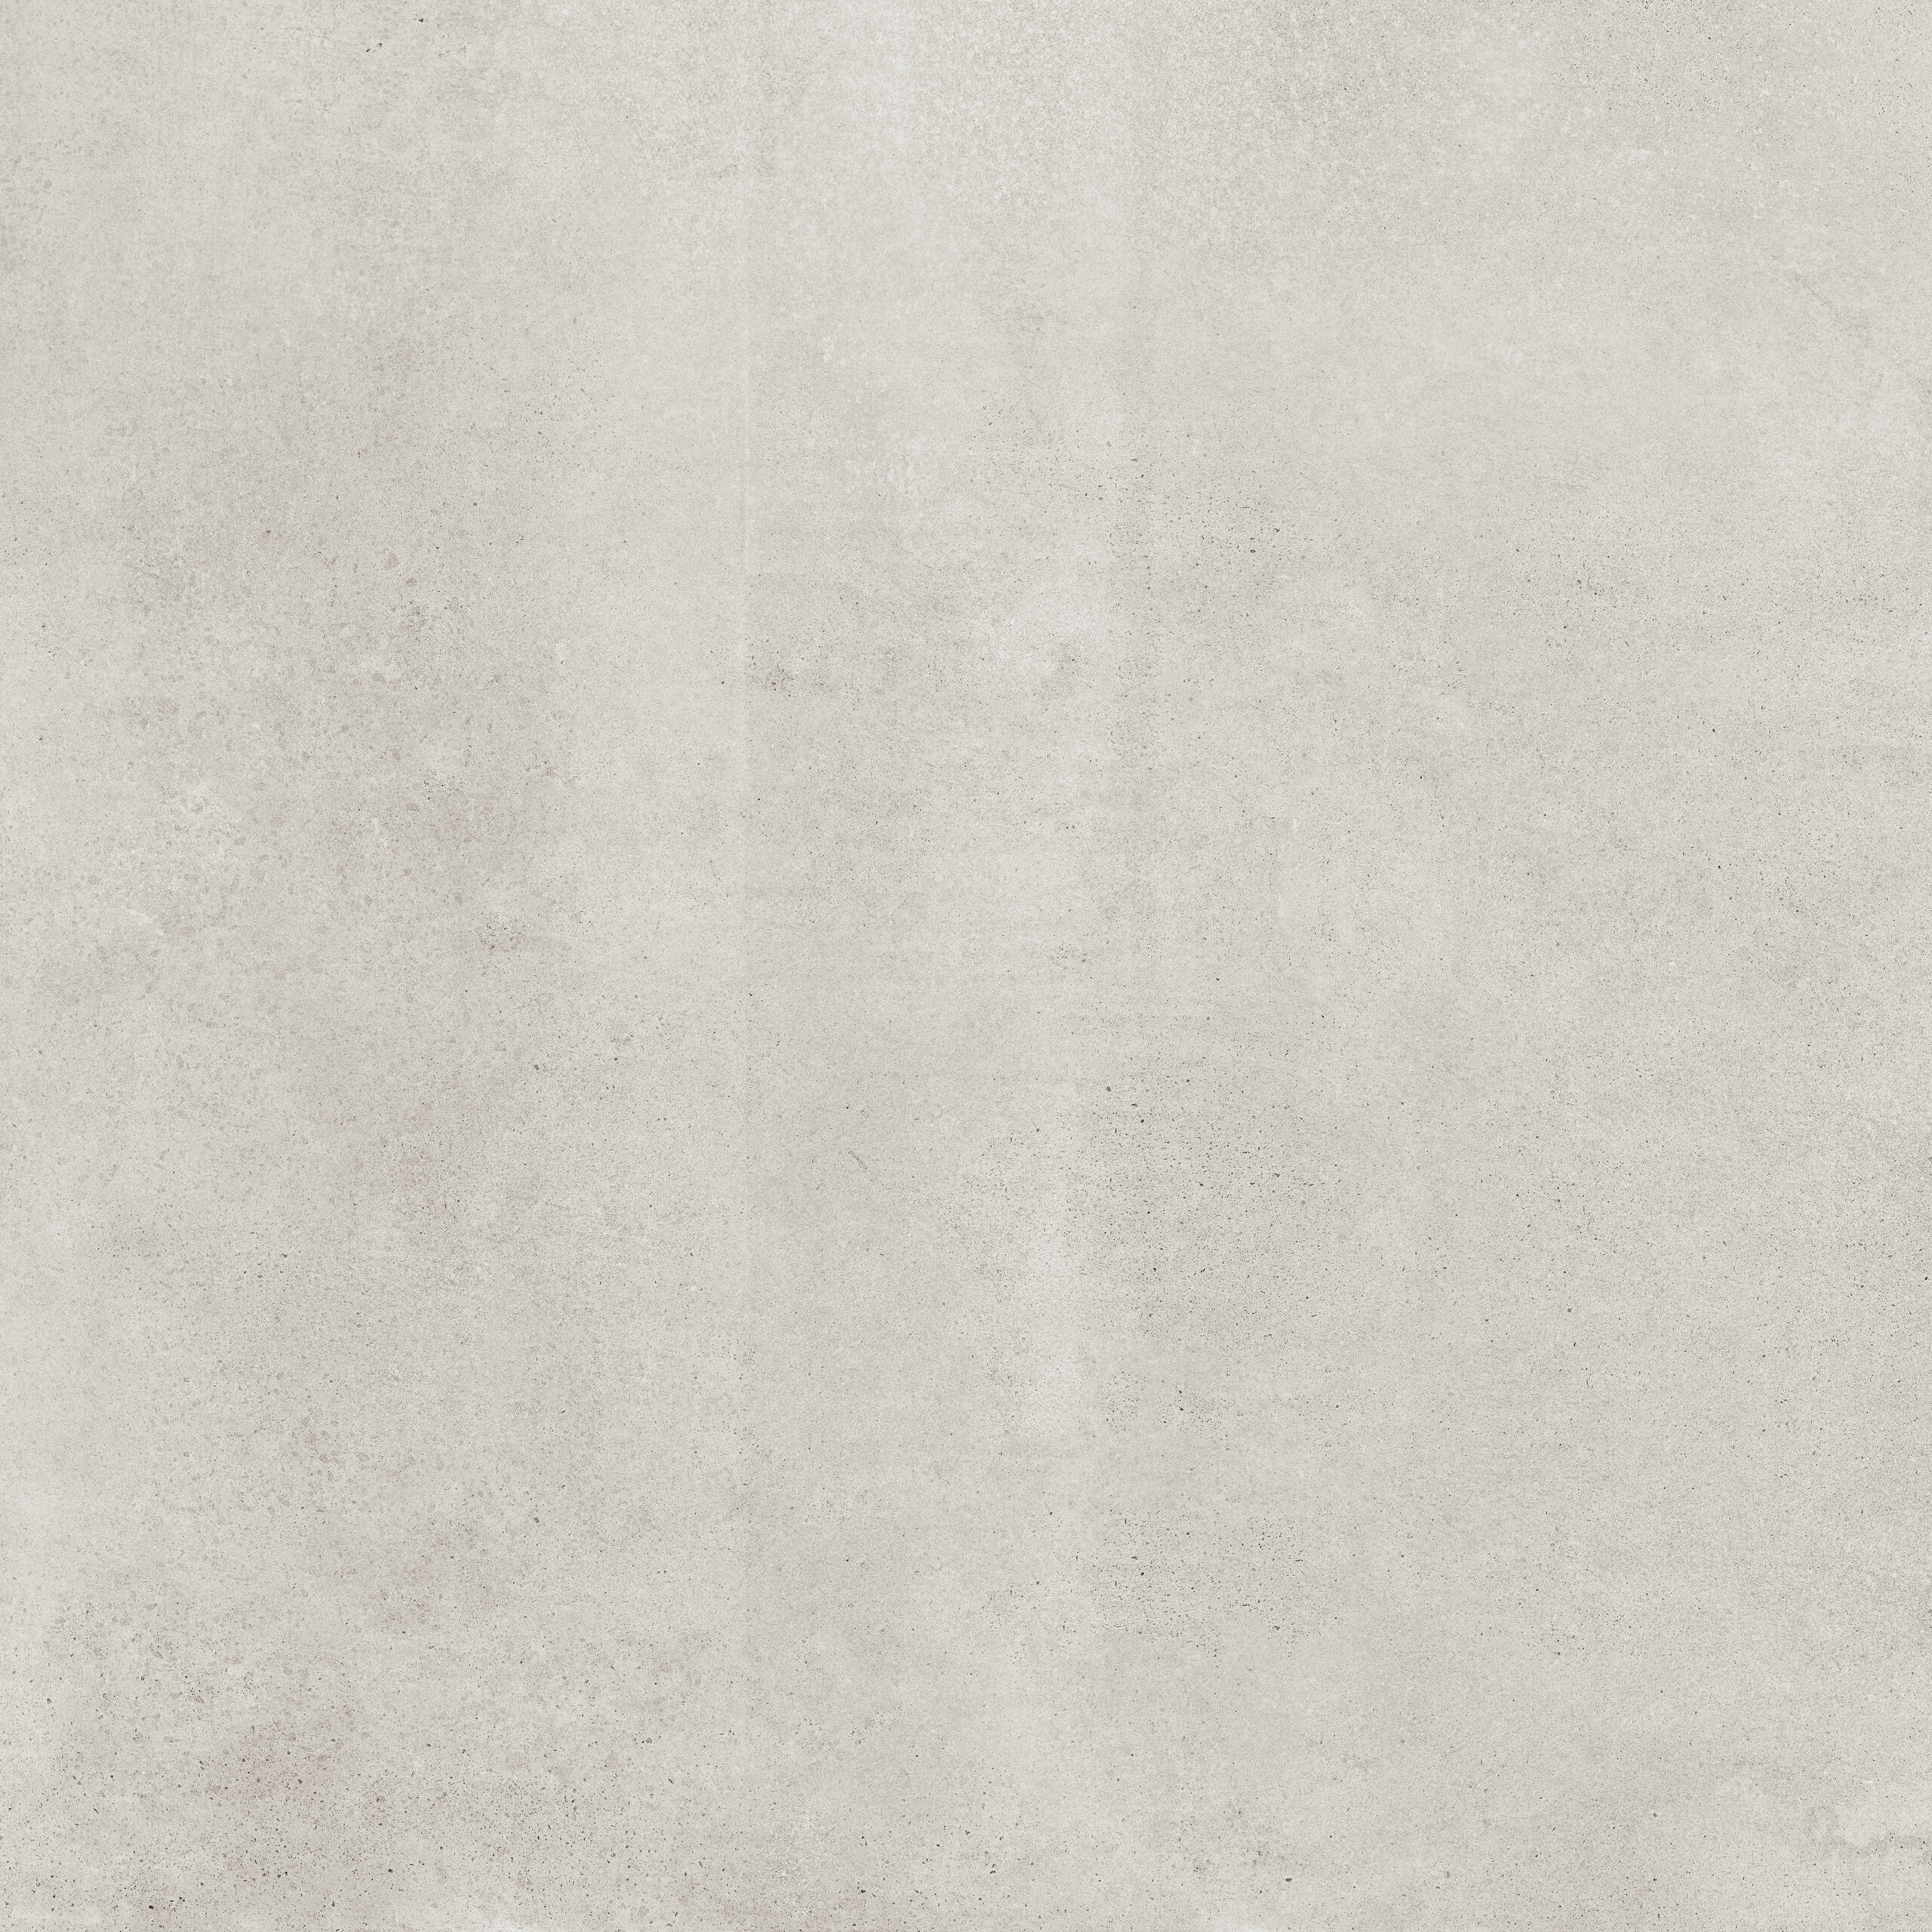 68 315 32x32 Industria Zinc HD Rectified Porcelain Tile scaled